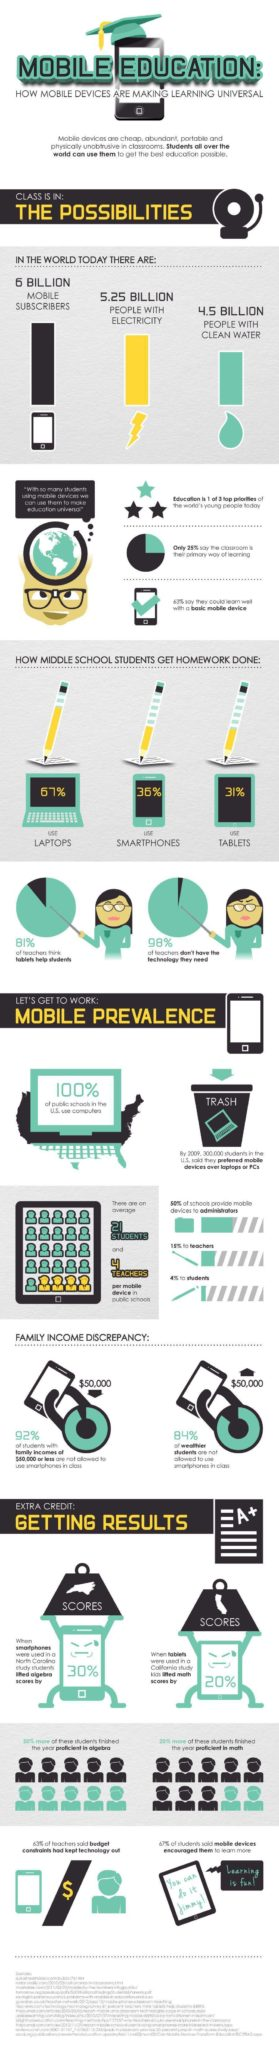 Mobile Devices Could Impact Student's Grades Around the World 1